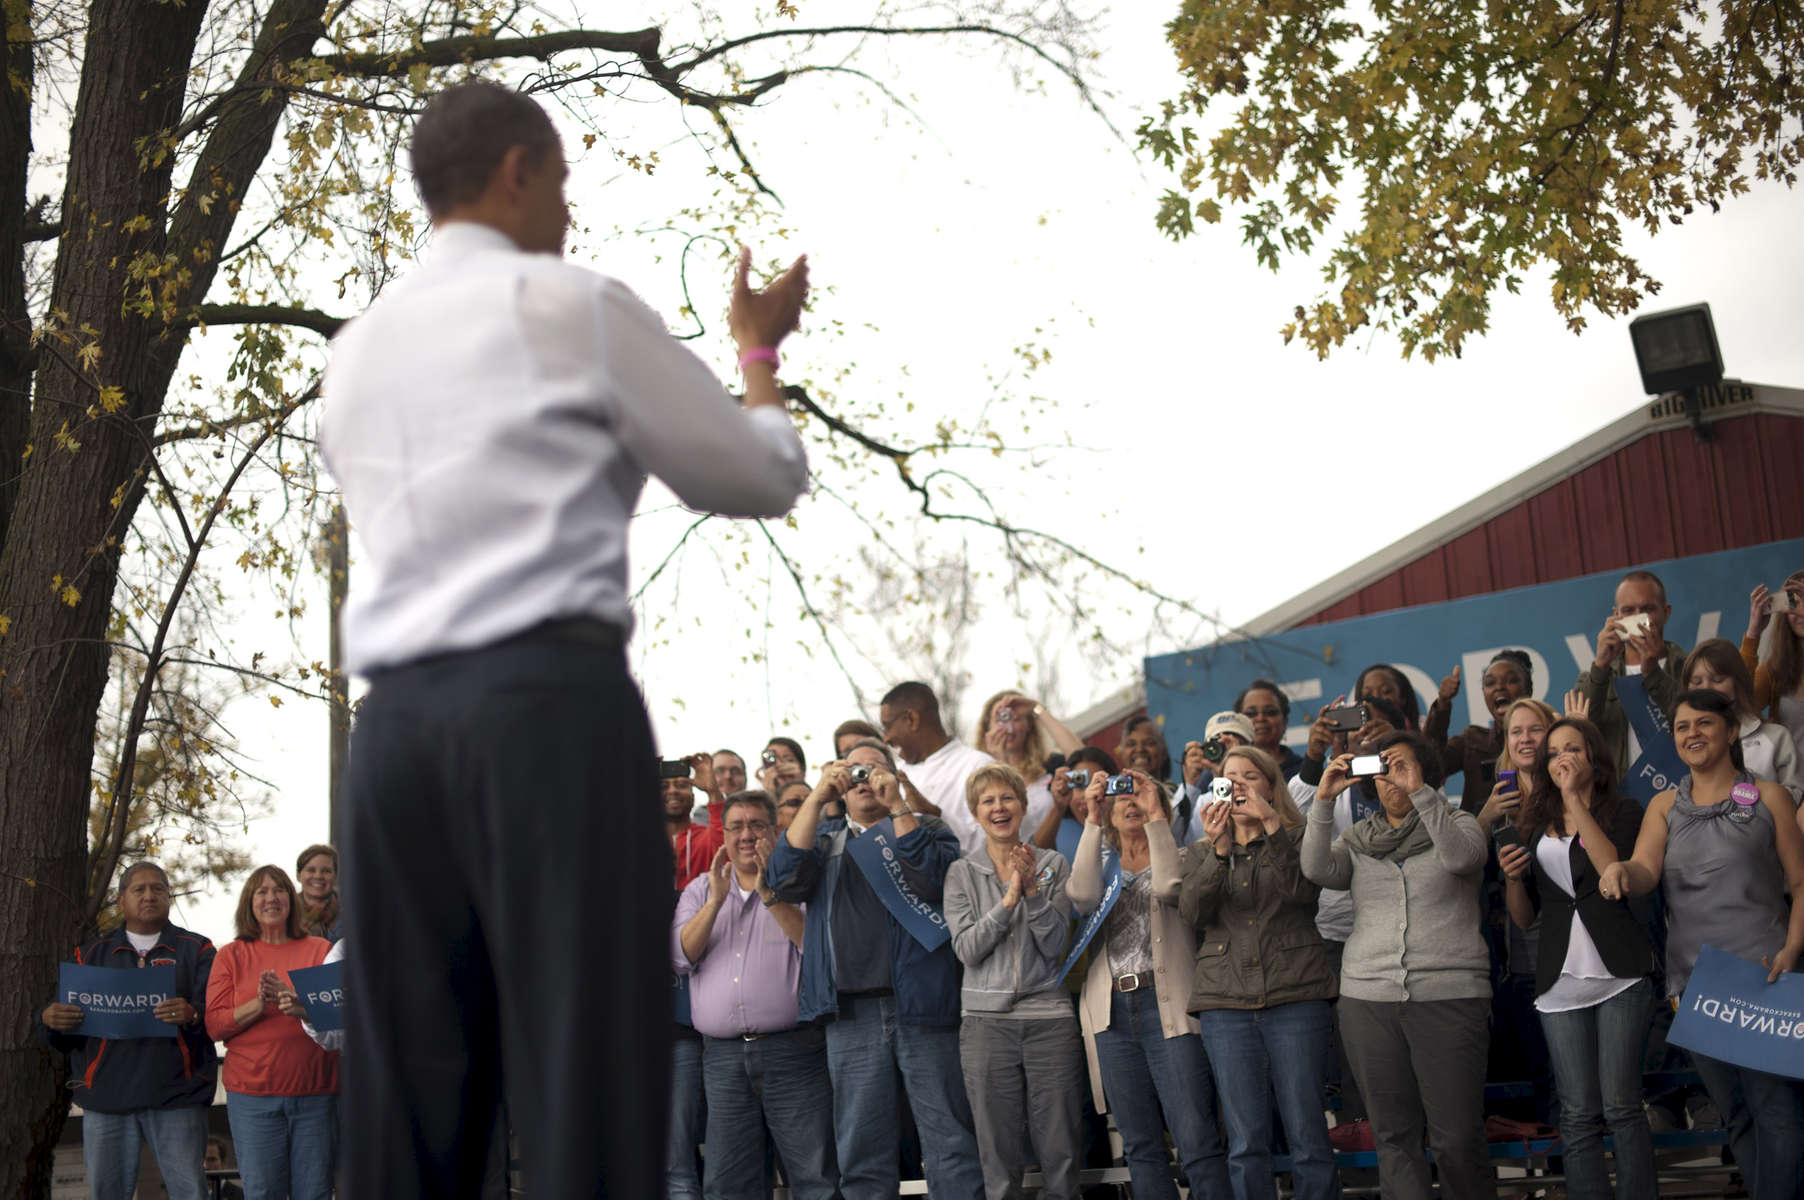 October 24, 2012 - Davenport, IA:  President Barack Obama waves to supporters at a campaign event in Davenport, IA,  his first stop on a whirlwind 48 hours of straight campaigning. (Scout Tufankjian for Obama for America/Polaris)